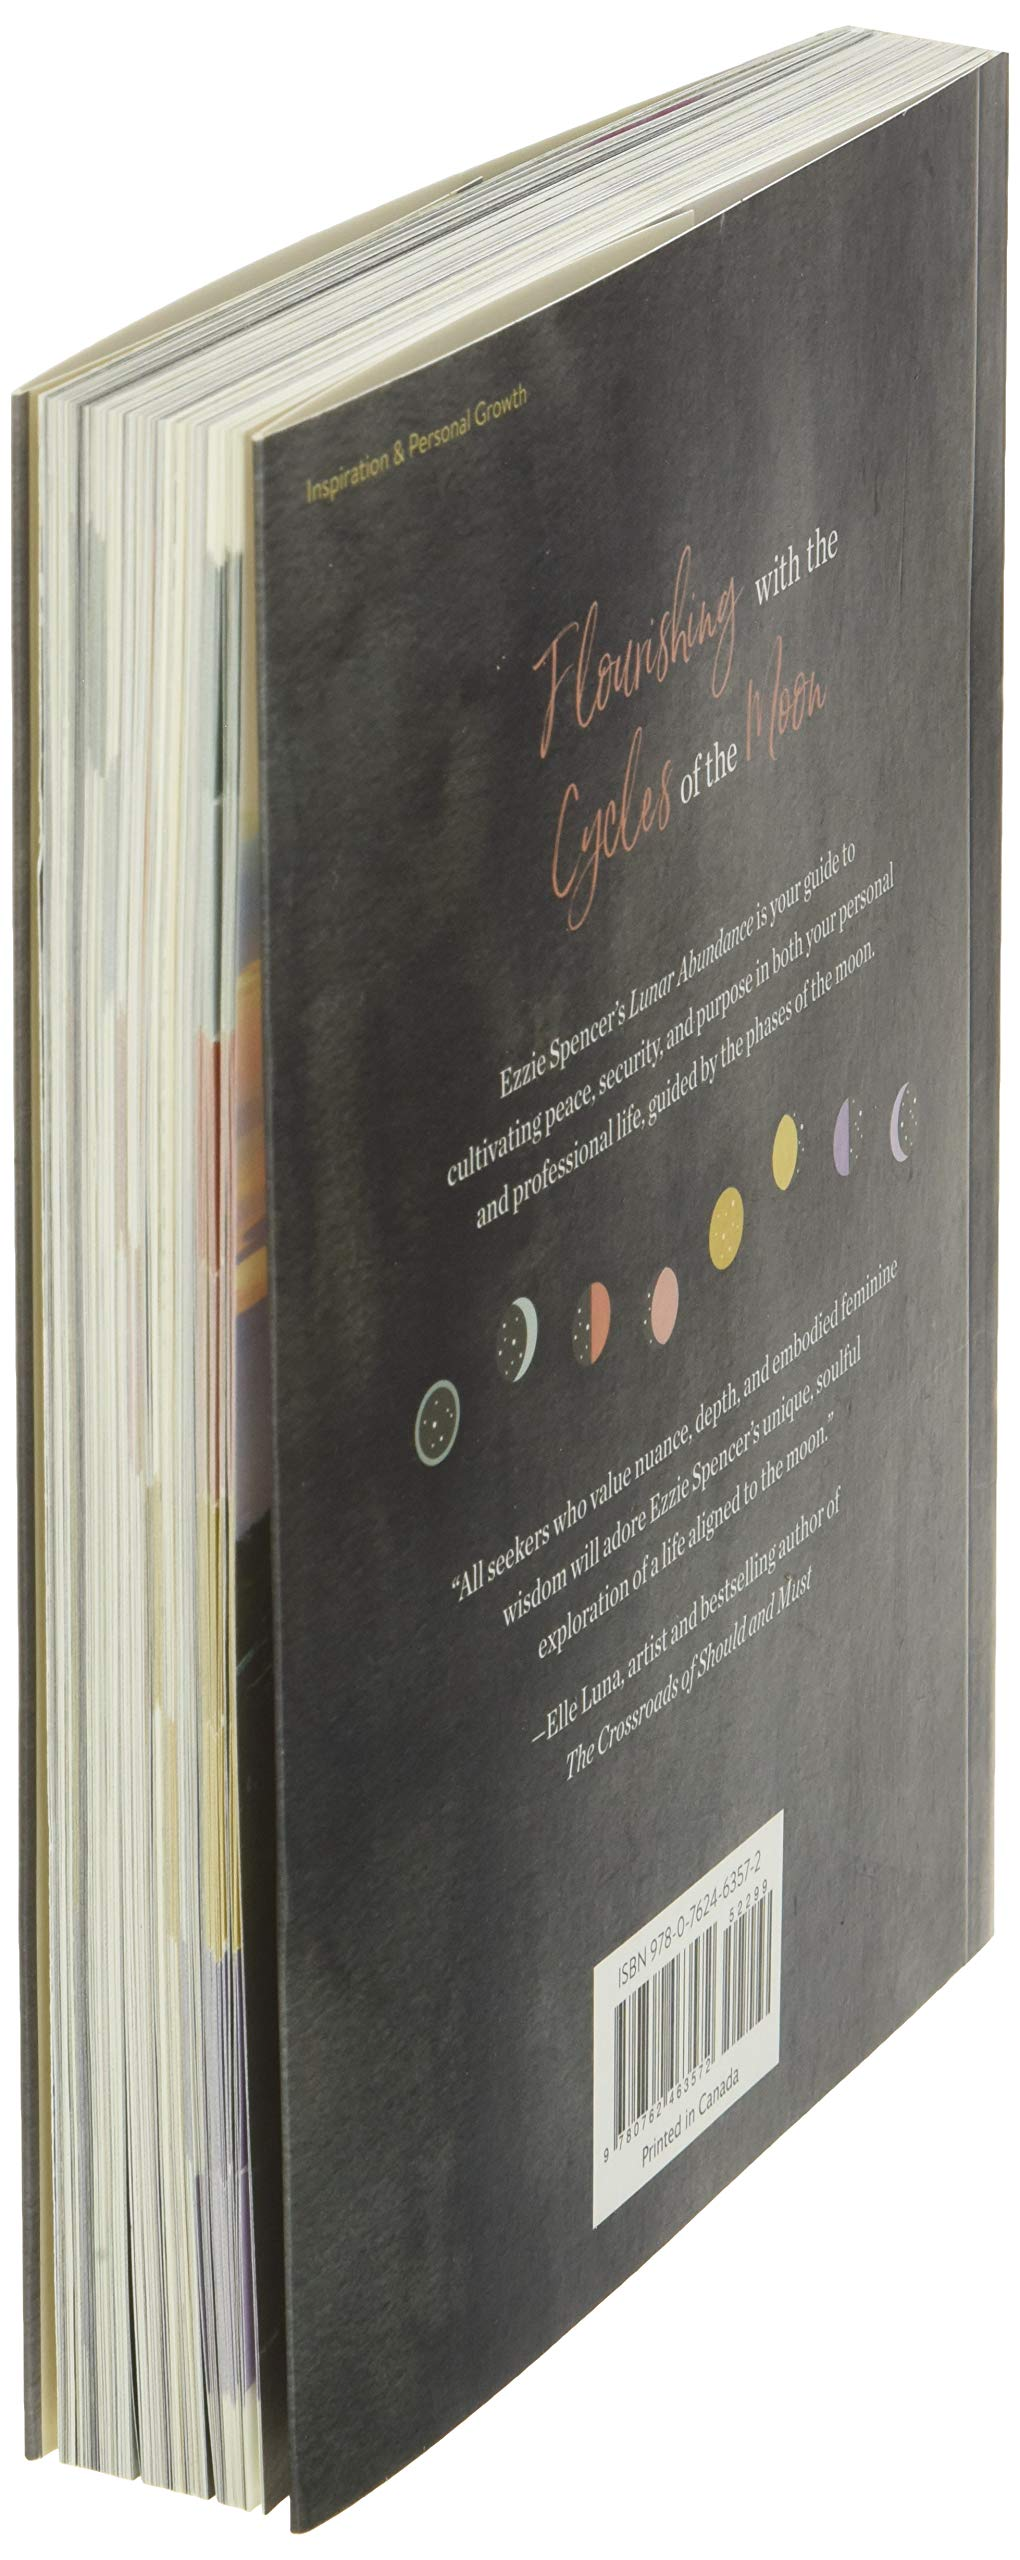 lunar-abundance-cultivating-joy-book-image-5